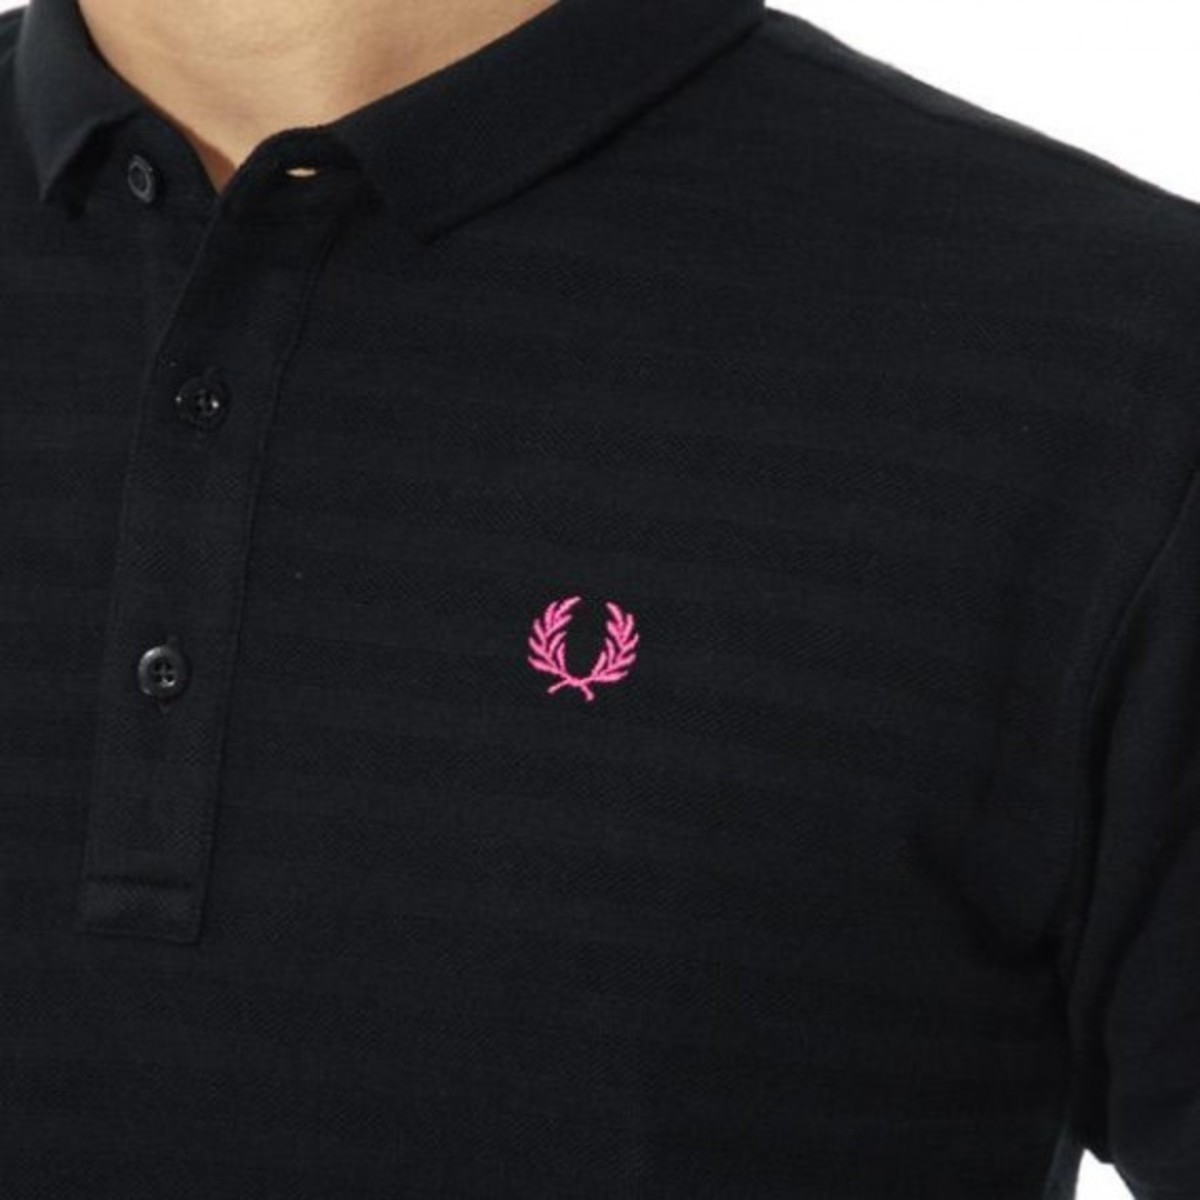 border-polo-shirt-05